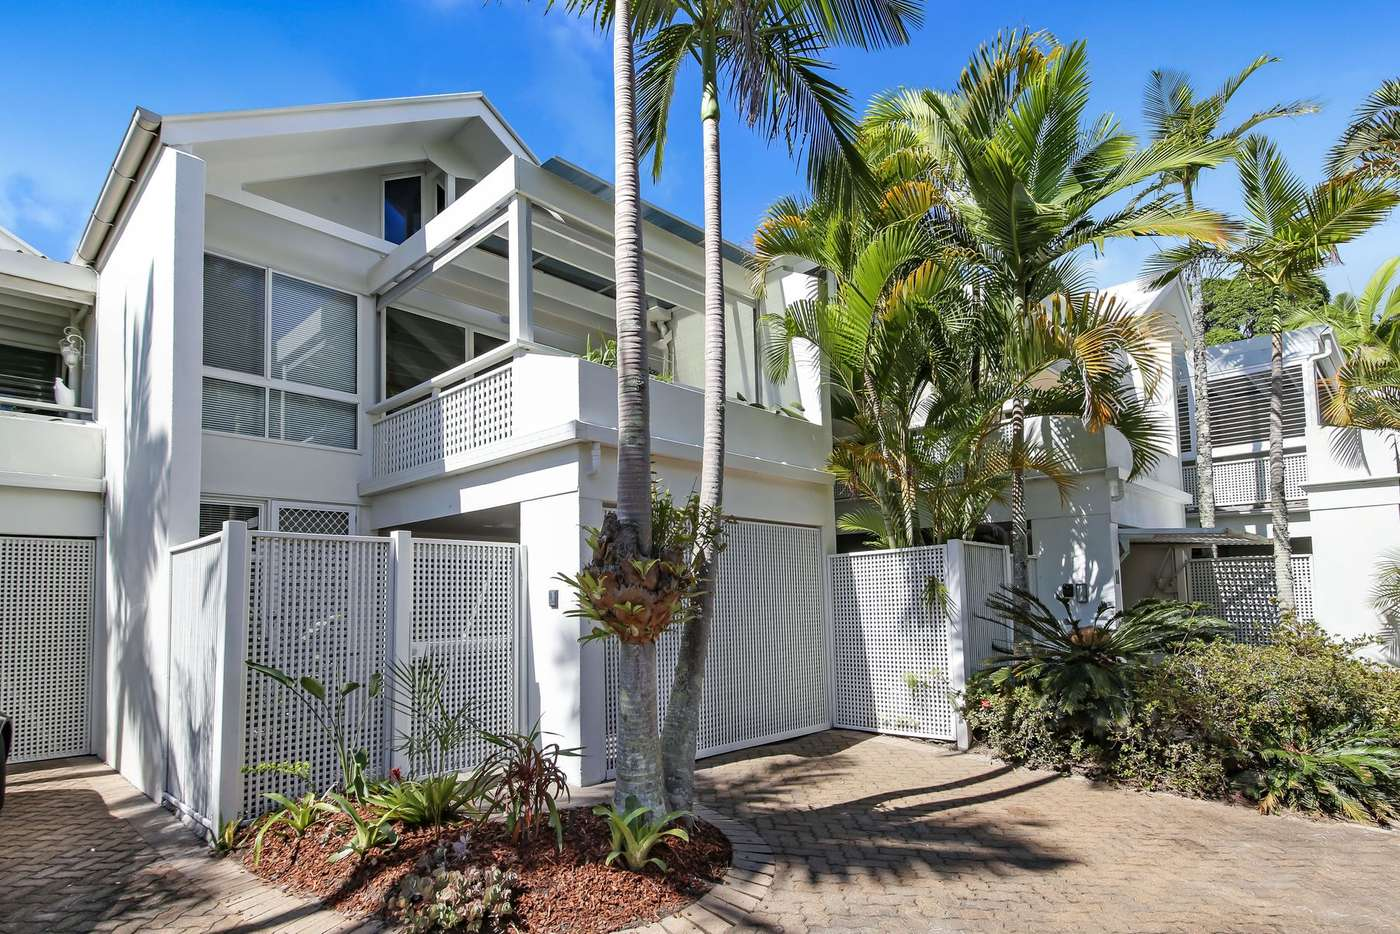 Main view of Homely townhouse listing, 10/2 Banksia Avenue, Noosa Heads QLD 4567